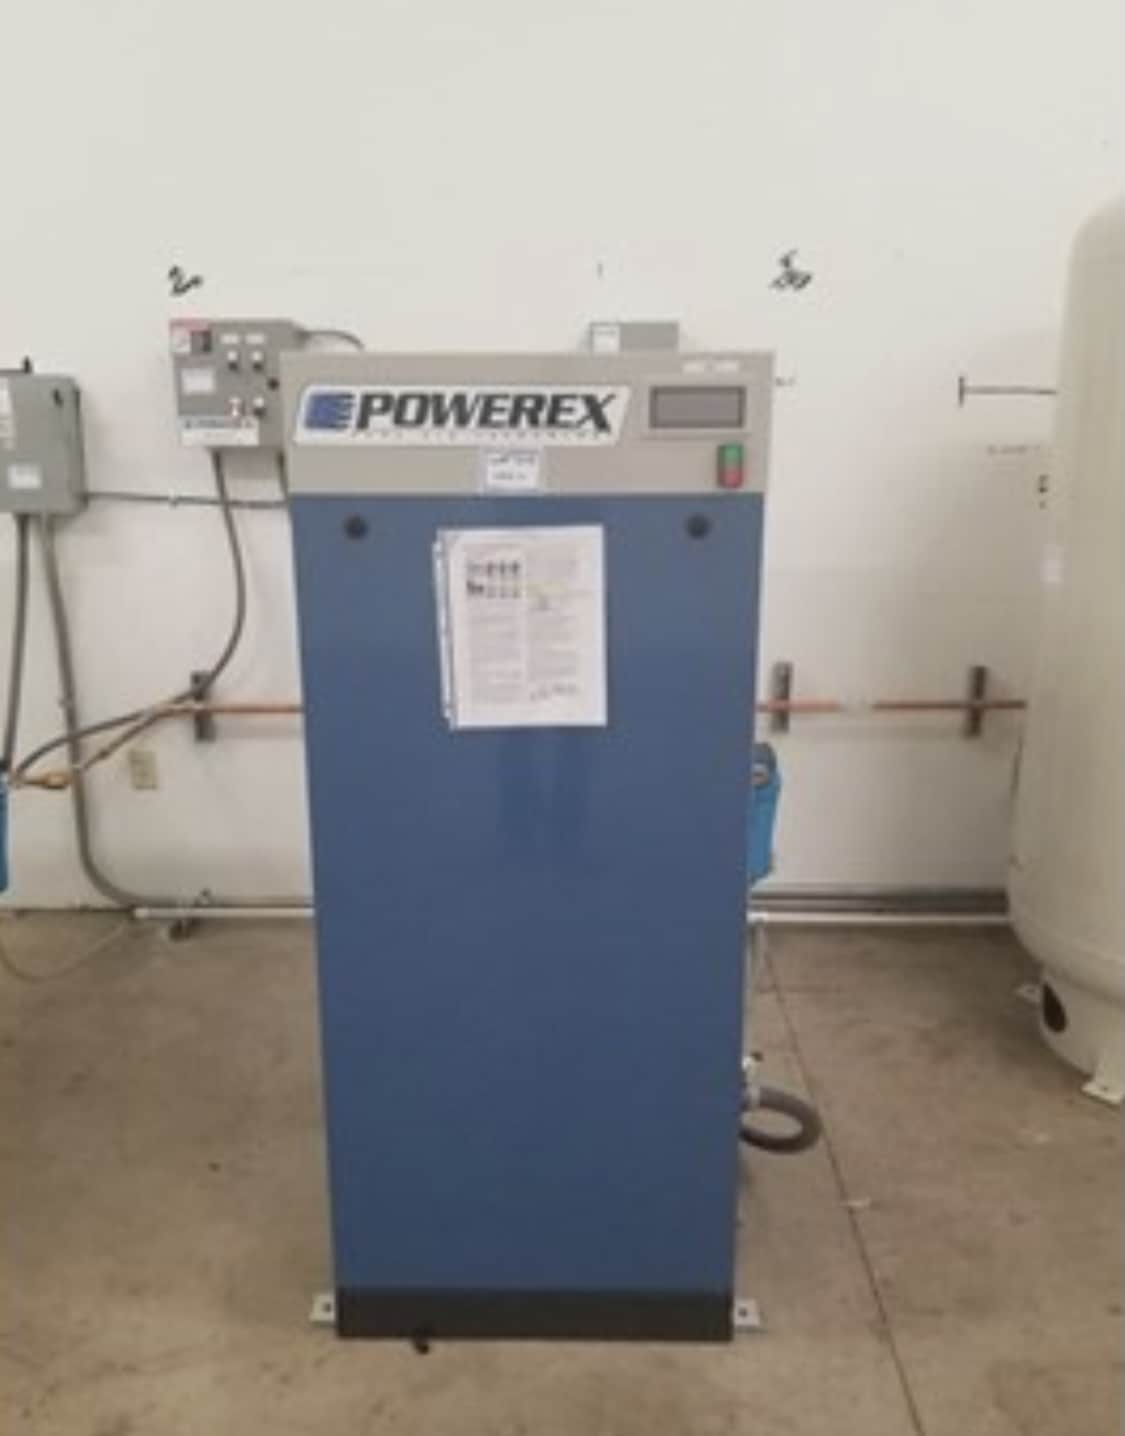 PowerEx Rotary Screw 35 HP air compressor system